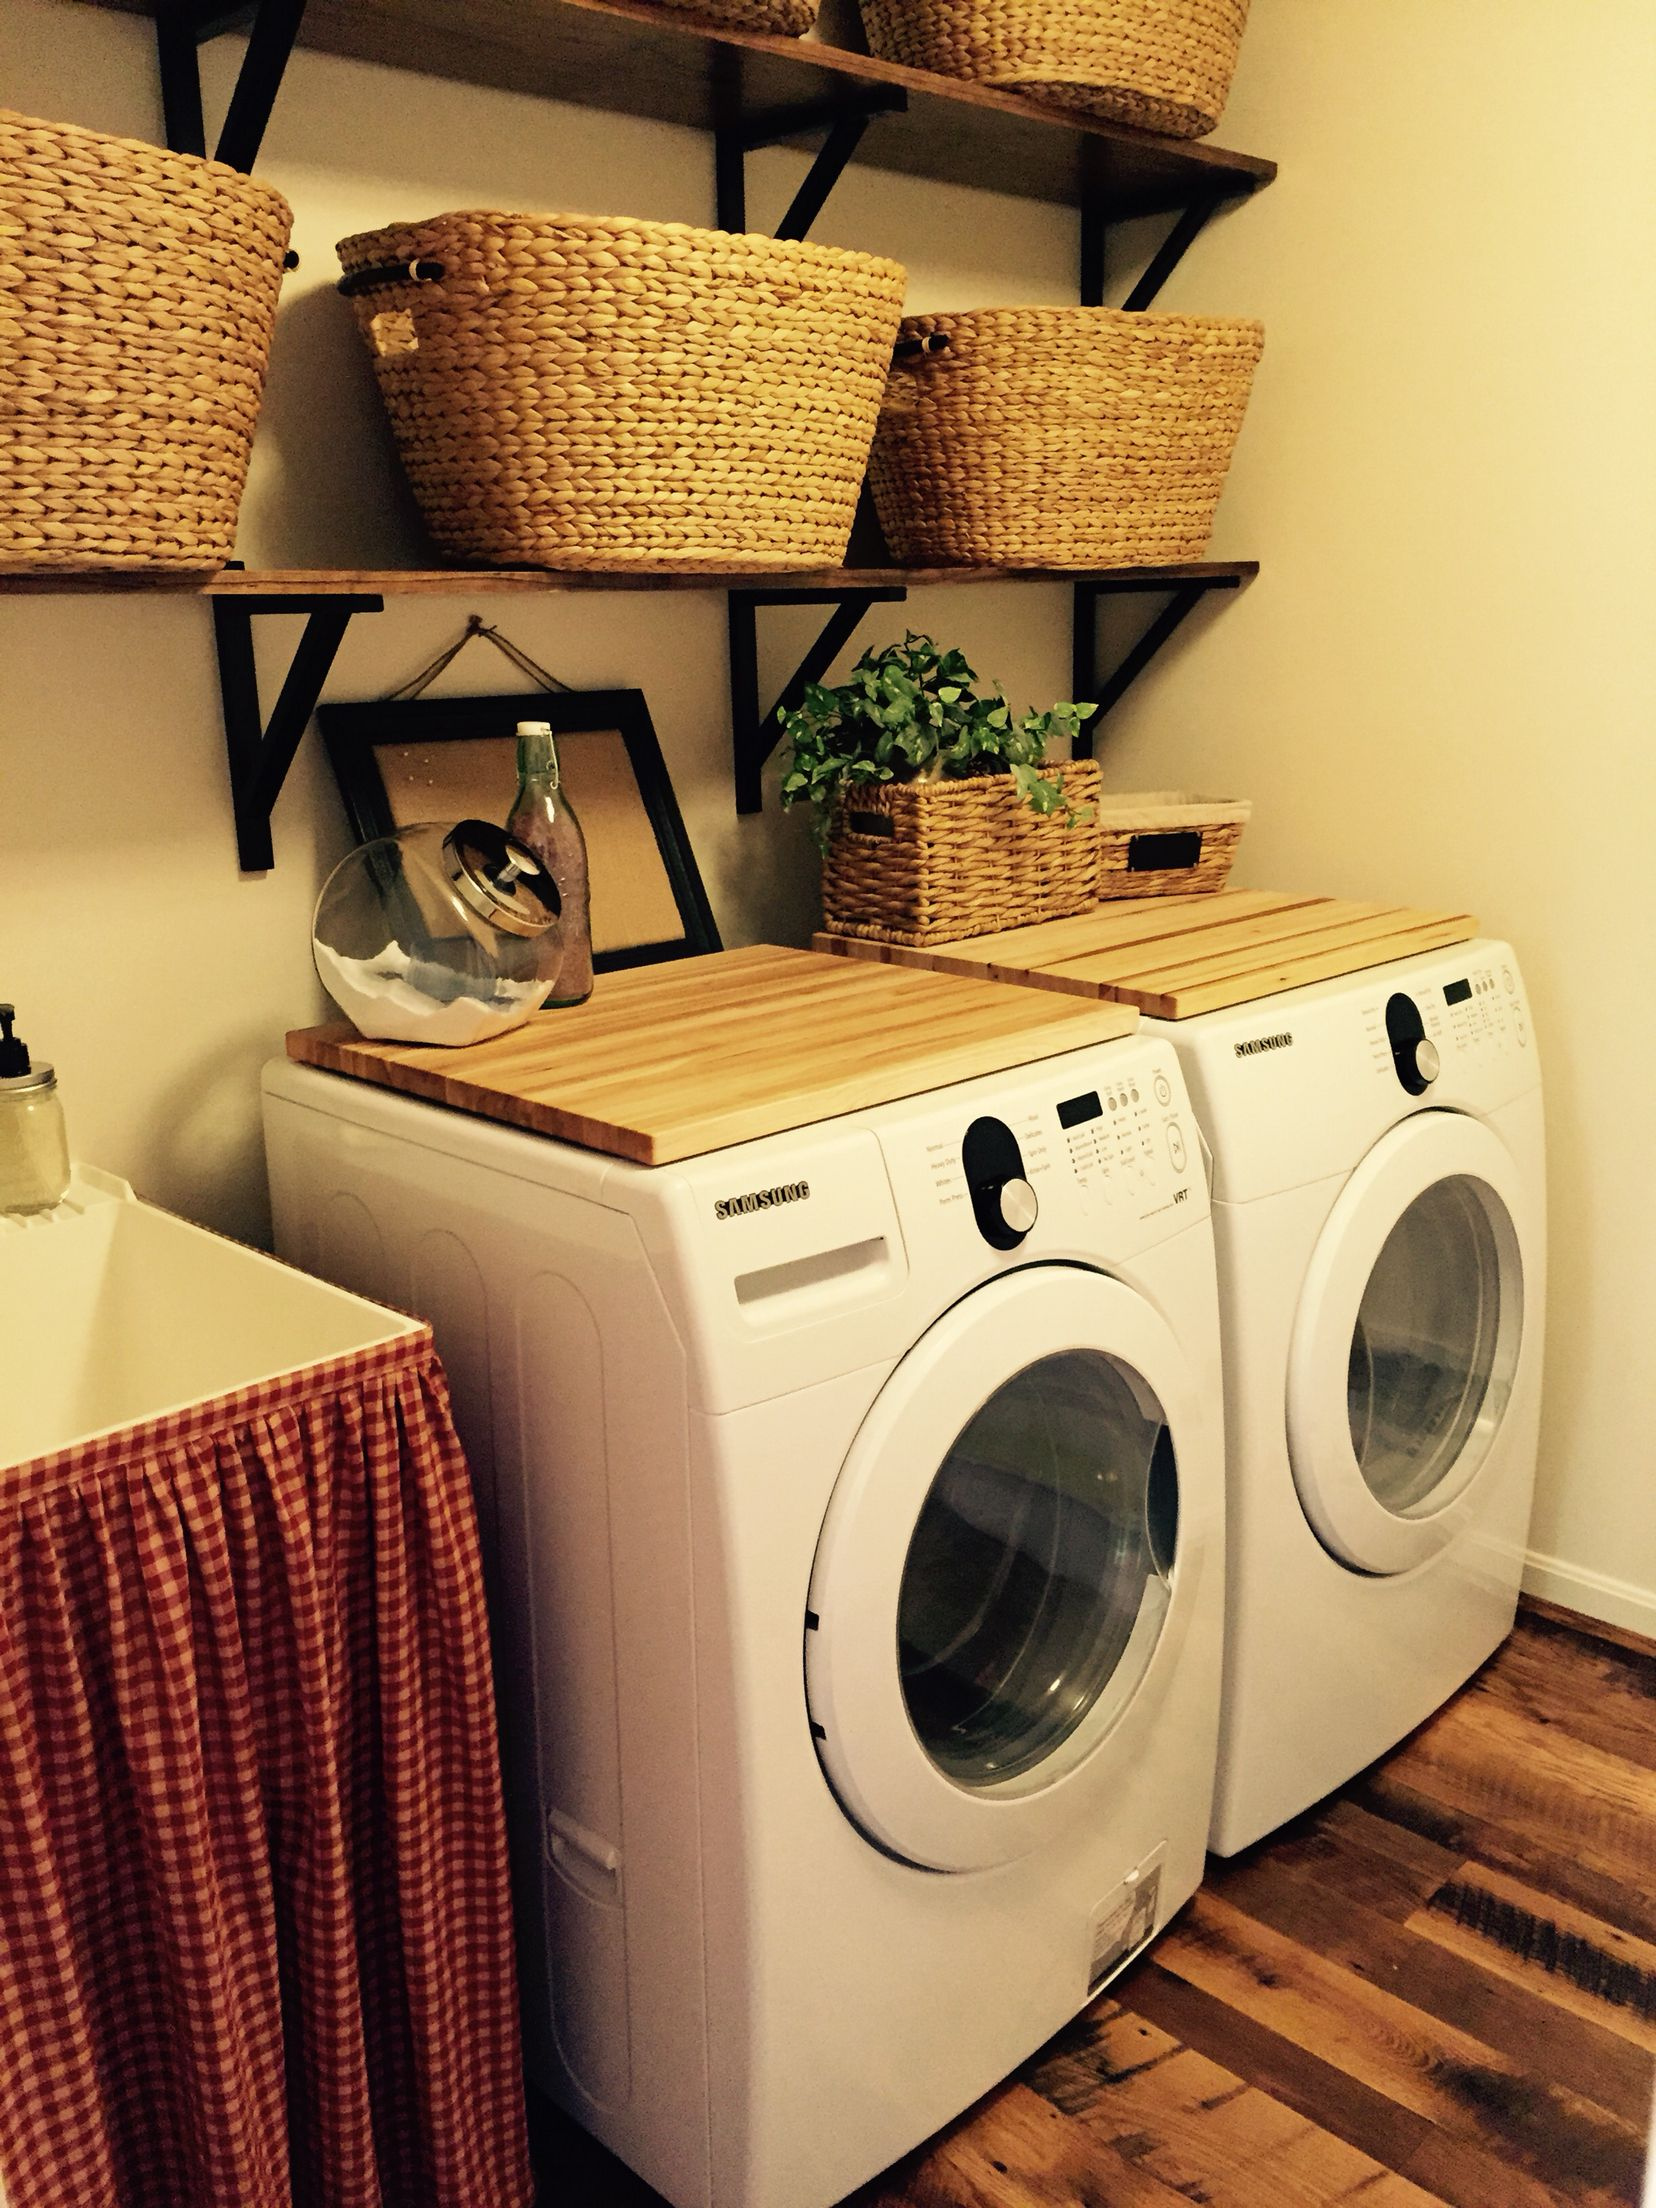 SMALL LAUNDRY ROOM. Decor to hide drain and plugs behind washer ...